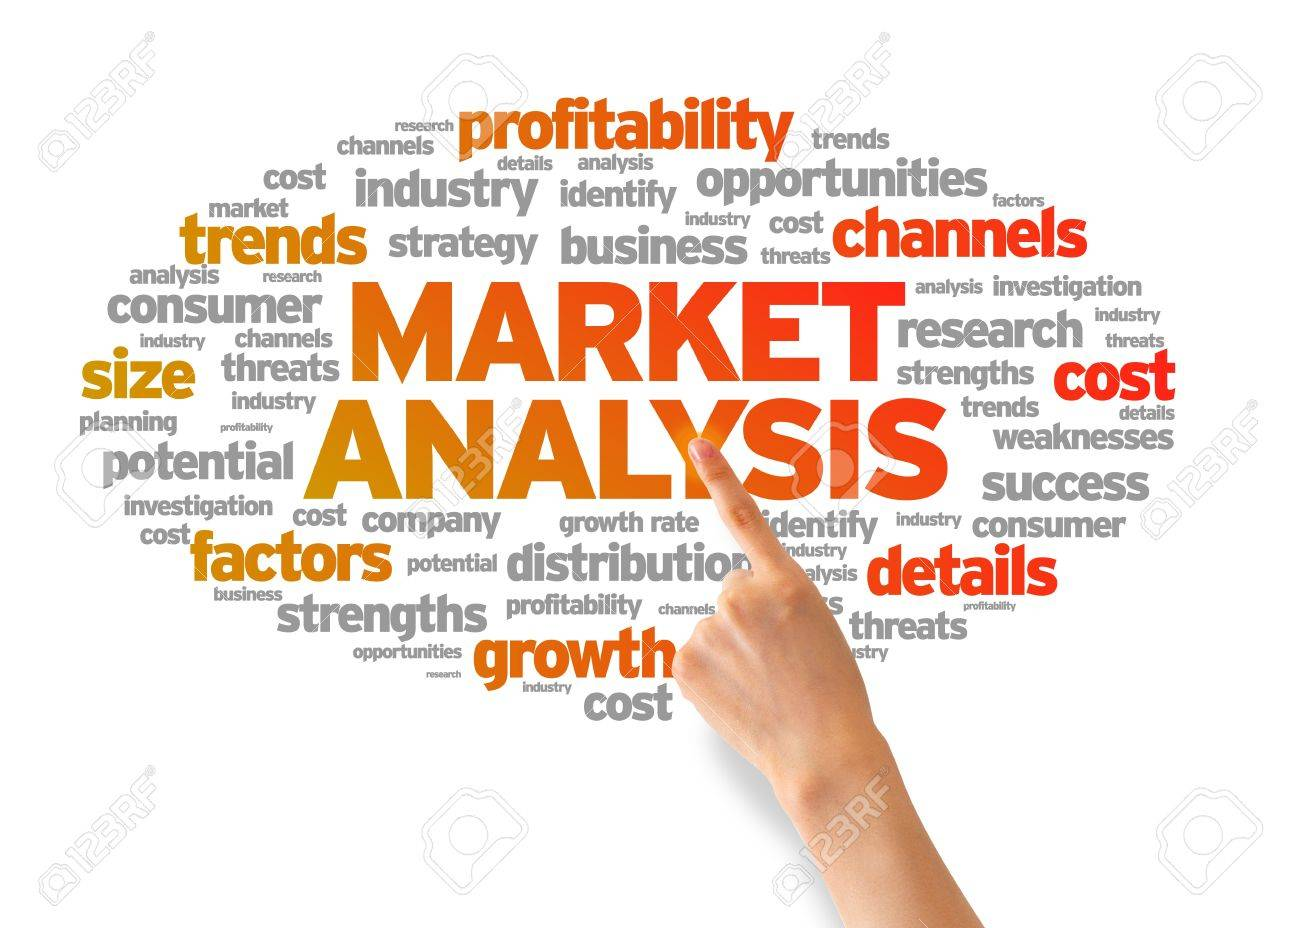 an analysis of marketing research Quantitative market research is numerically oriented, requires significant attention to the measurement of market phenomena and often involves statistical analysis for example, a bank might ask its customers to rate its overall service as either excellent, good, poor or very poor.